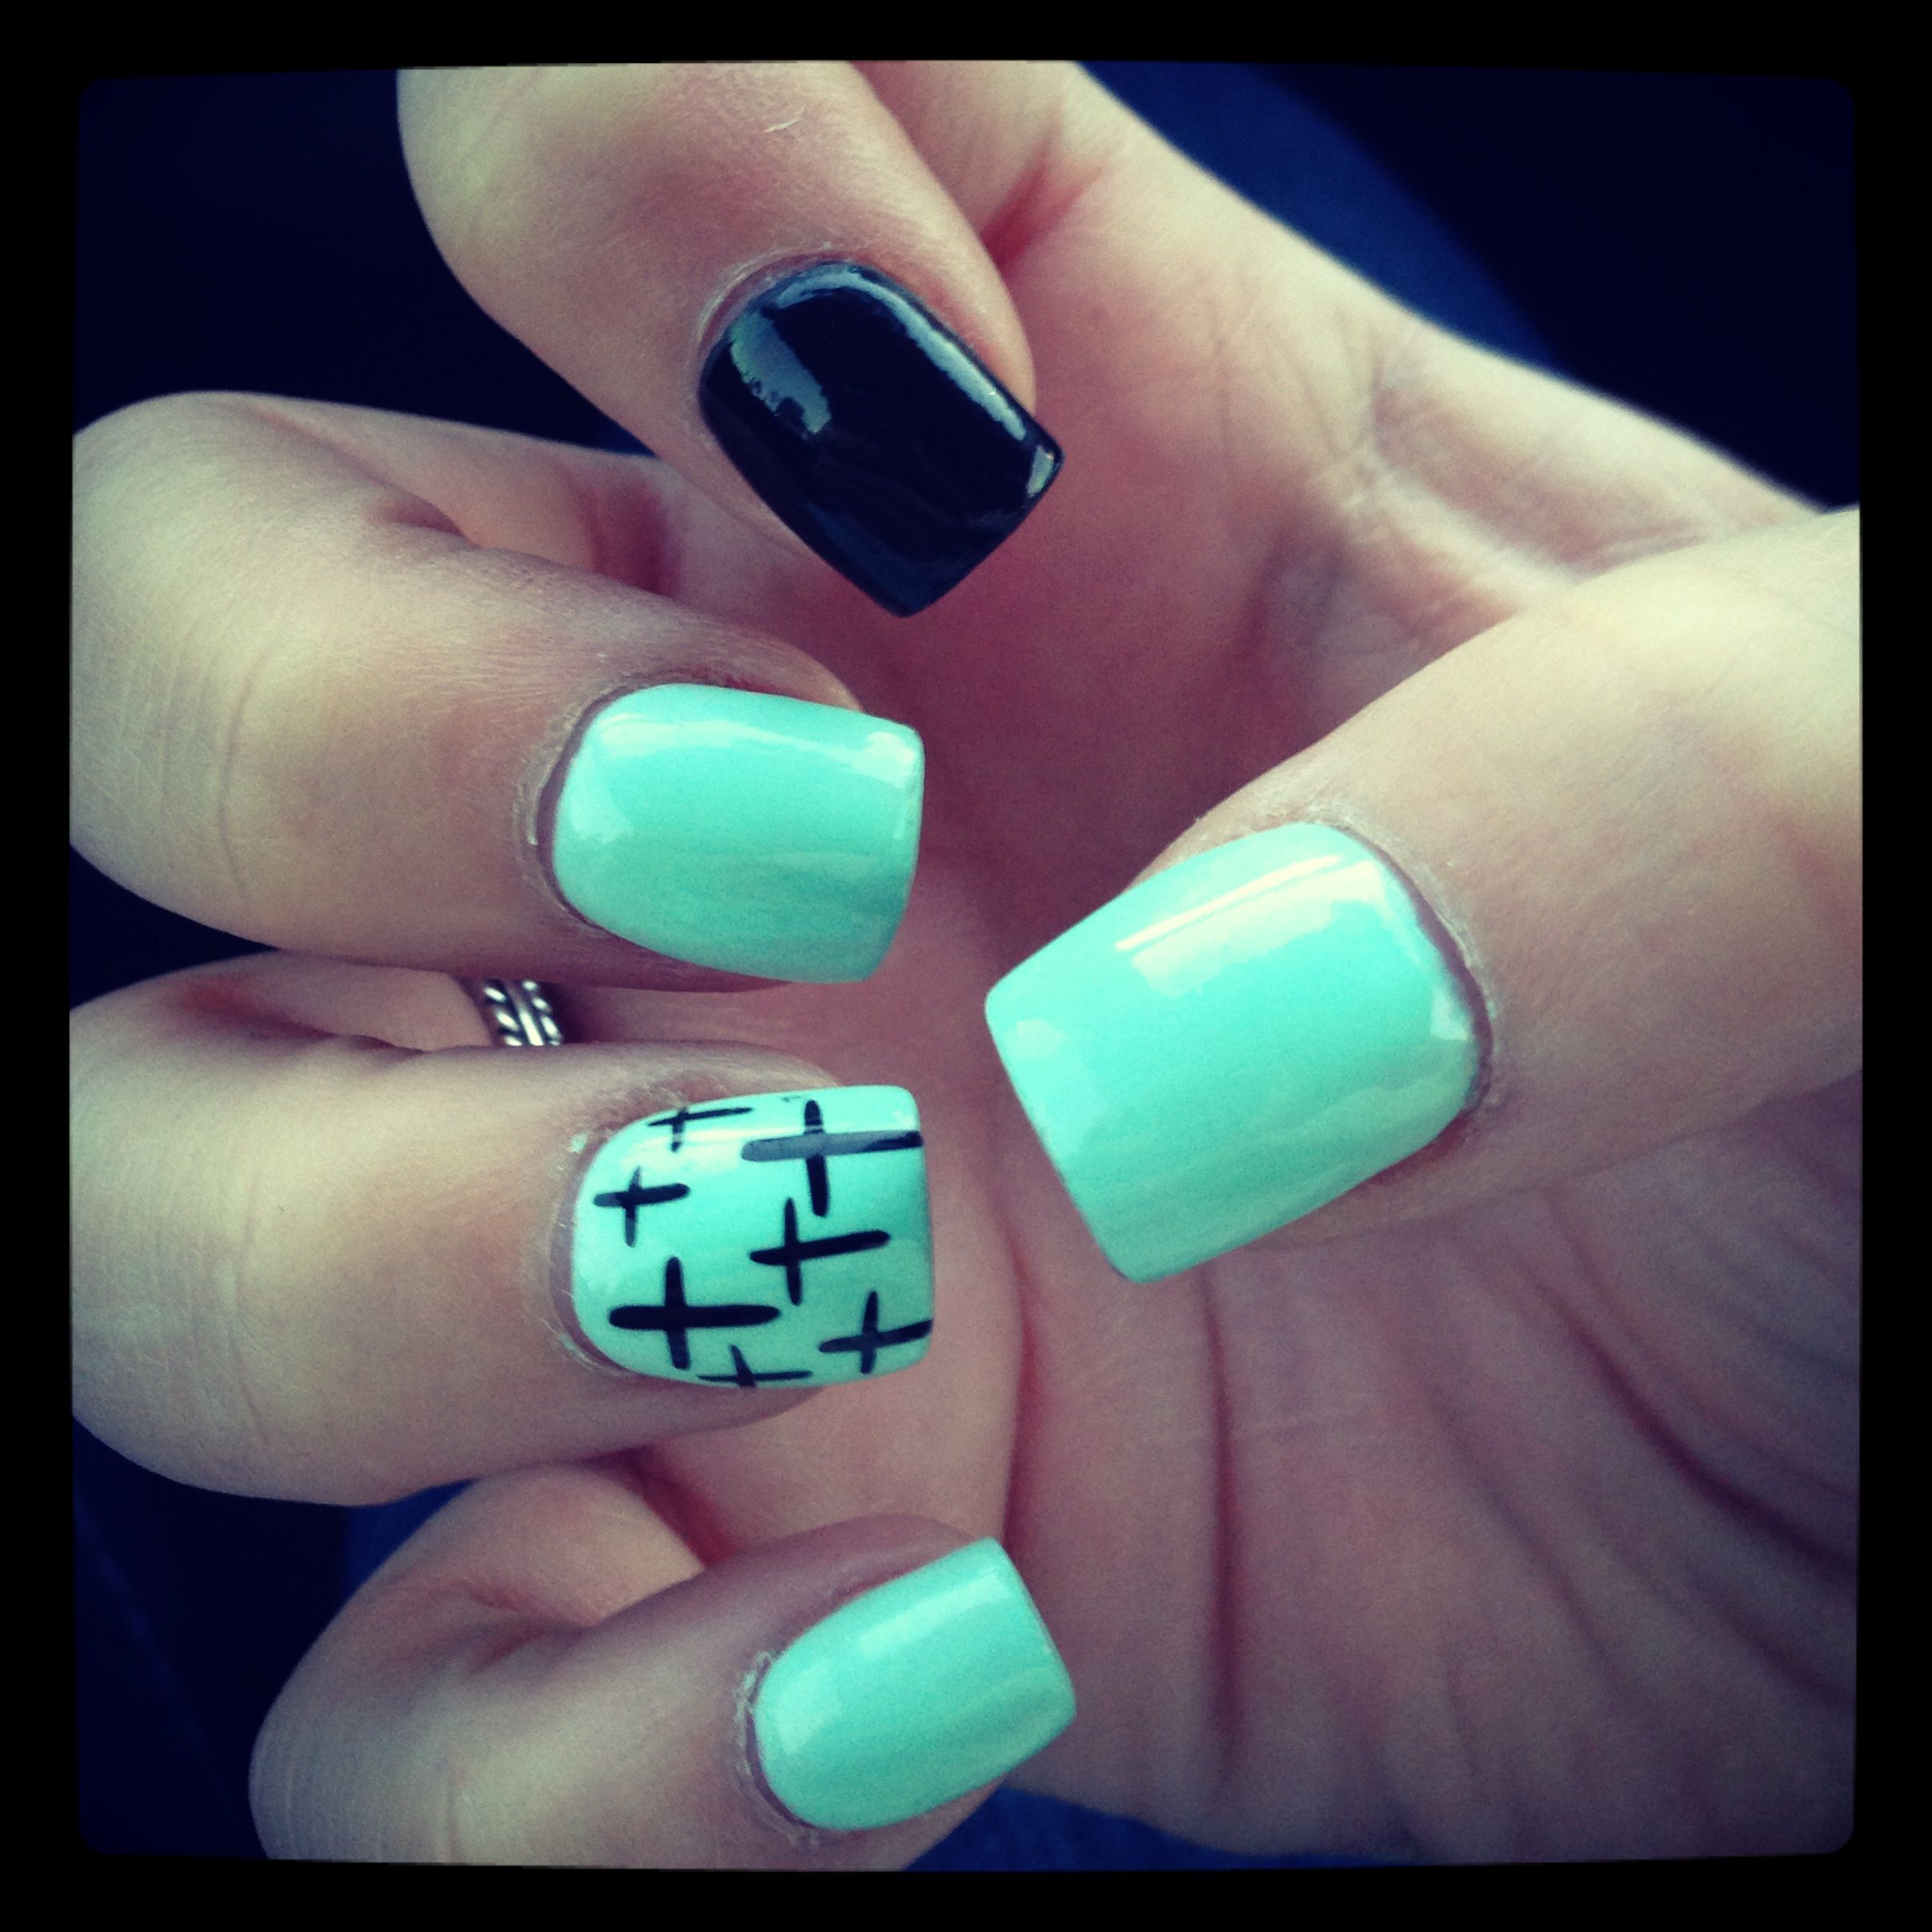 I Love My Nails Mint Nails Crosses Nails Pinterest Mint